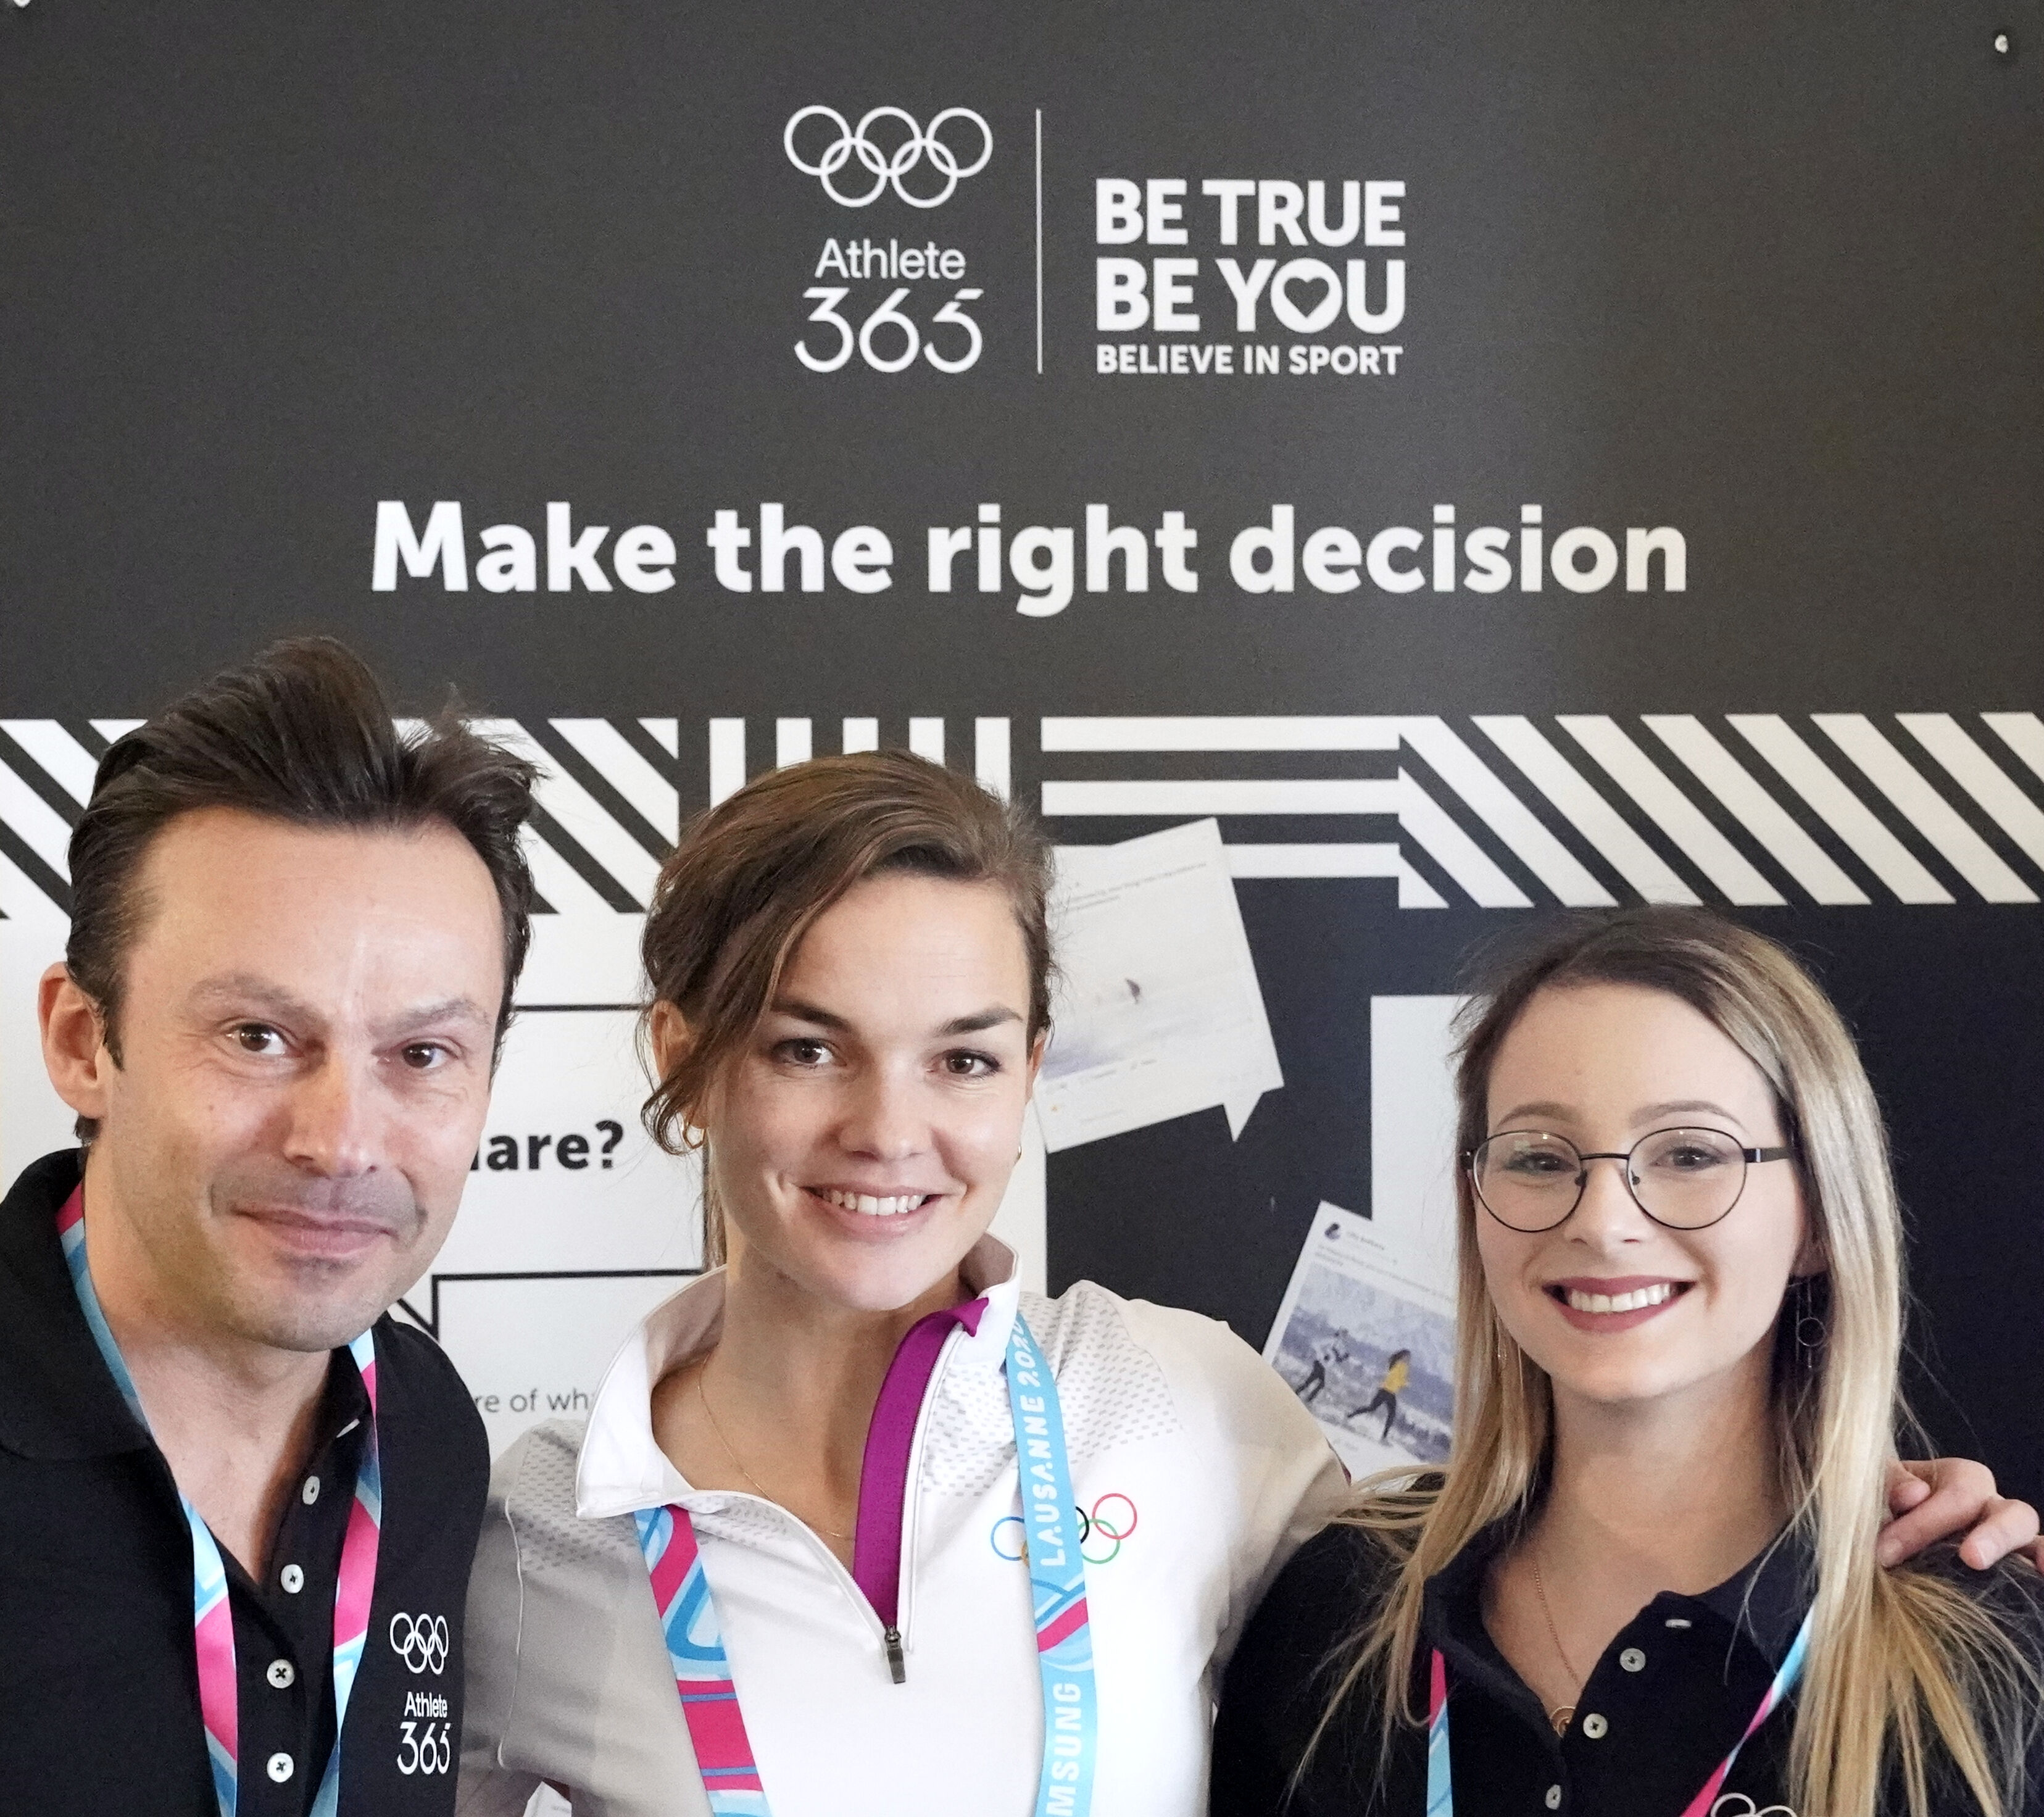 Play Fair Code at the Young Olympic Games in St. Moritz